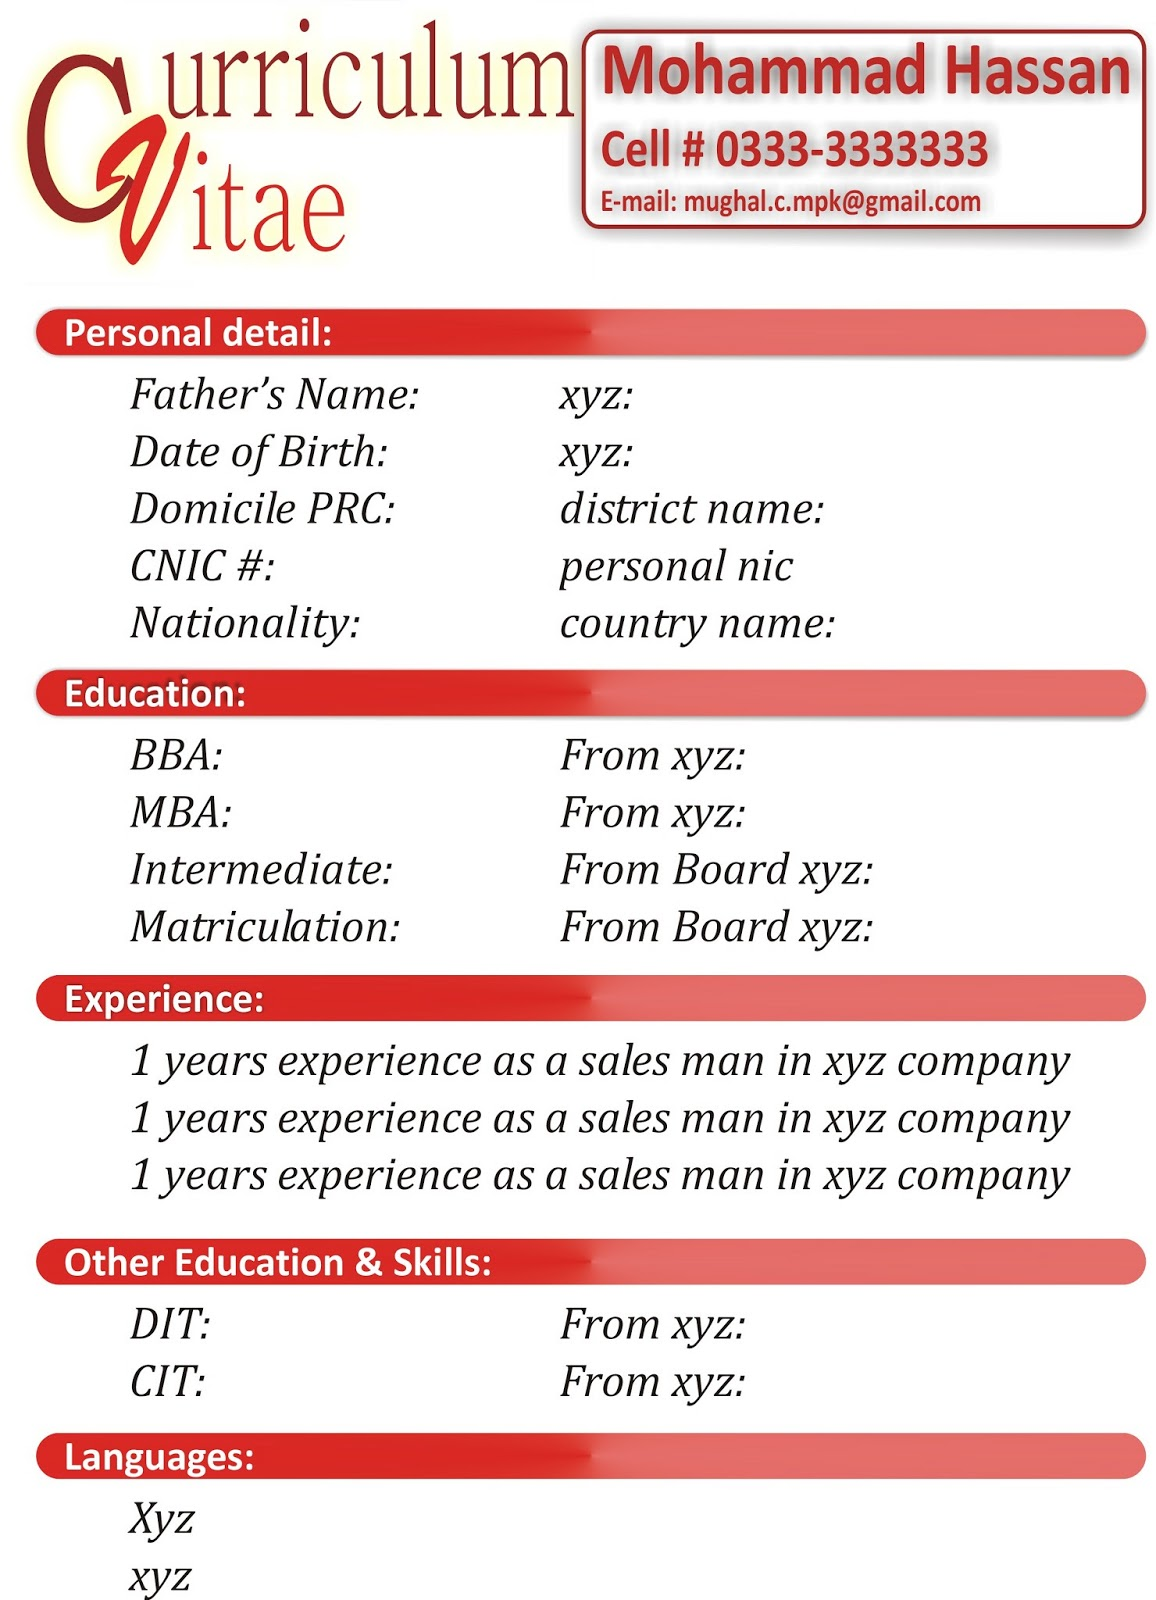 cv formats  u0026 notes  new latest cv format  new latest cv format 2013  cv format free download